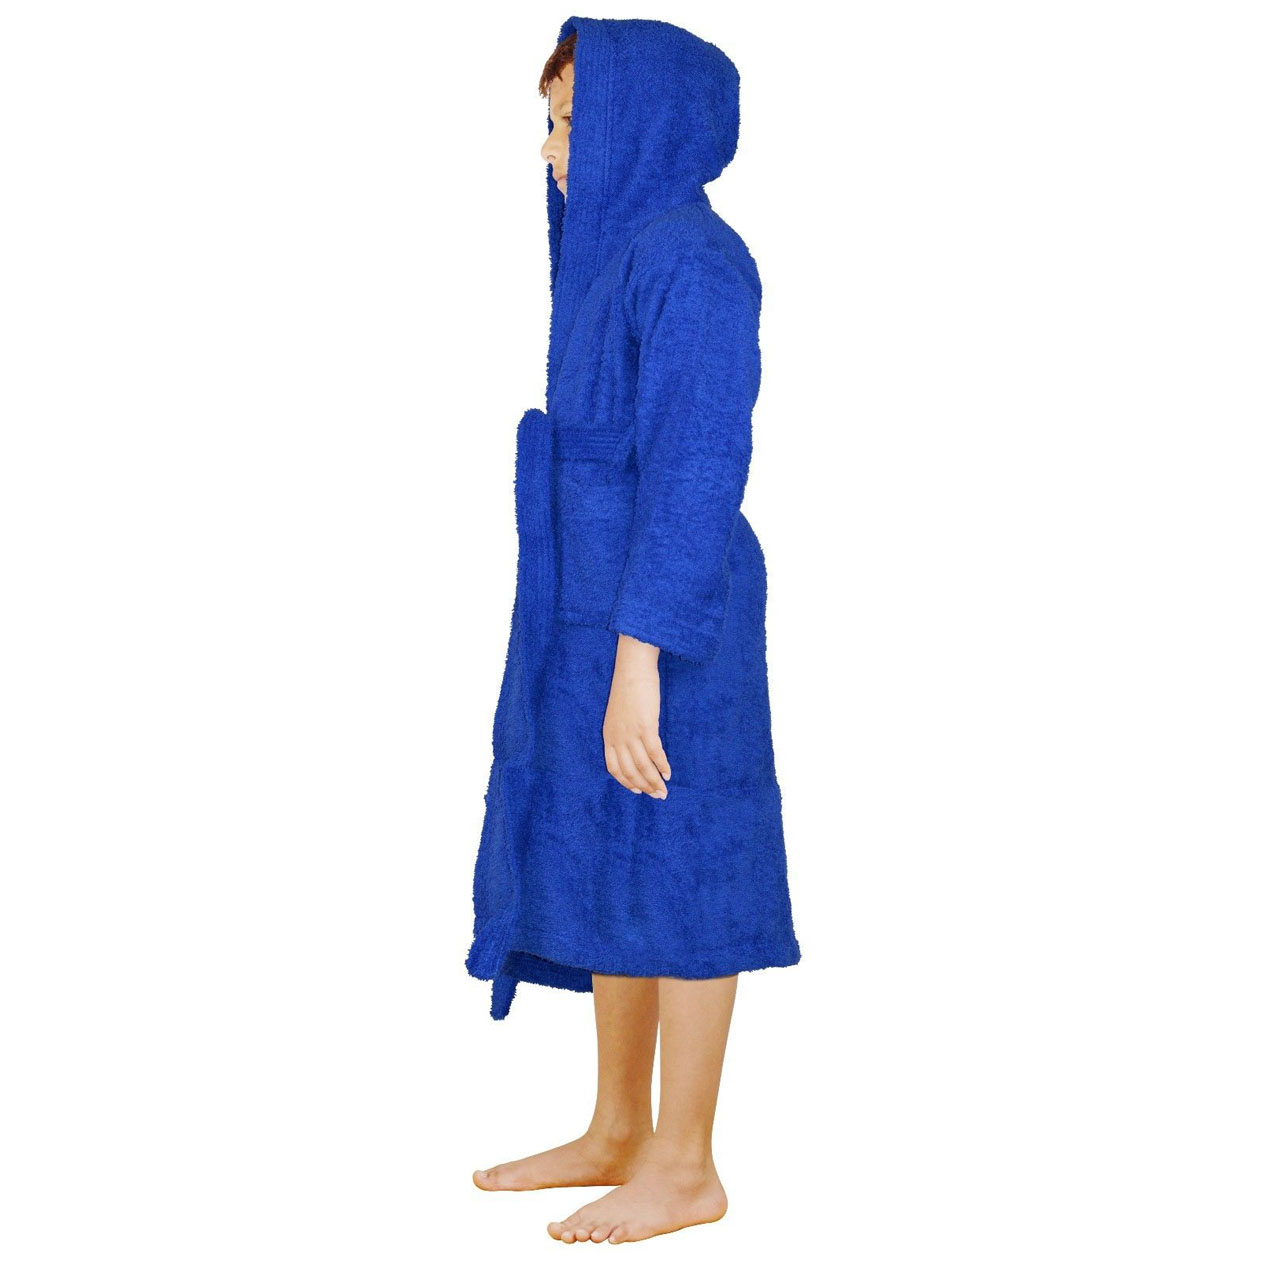 2409545539 Terry Cloth Blue 100% Cotton Kid s Unisex Fit Hooded Bathrobes ...